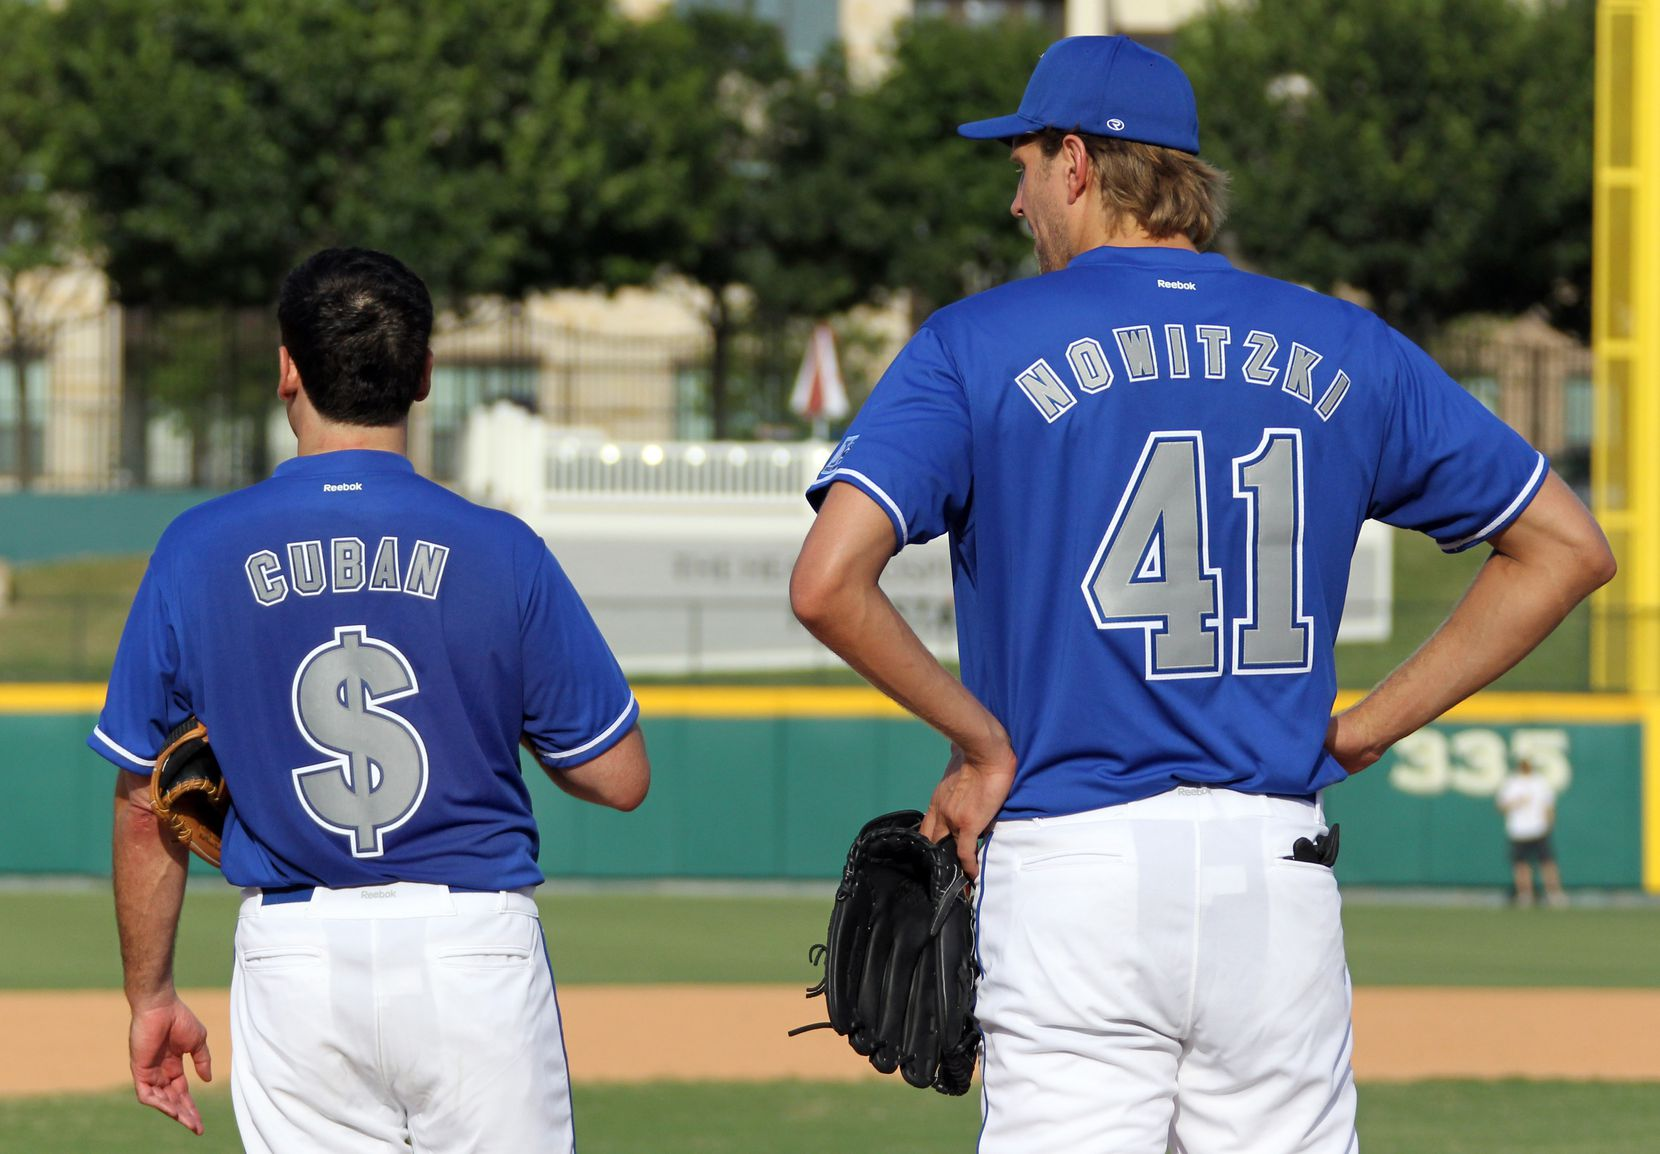 Dallas Mavericks owner Mark Cuban and Dirk Nowitzki are pictured before the Annual Heroes Celebrity Baseball Game at Dr Pepper Ballpark in Frisco on Saturday, June 29, 2013.  (Louis DeLuca/Dallas Morning News)